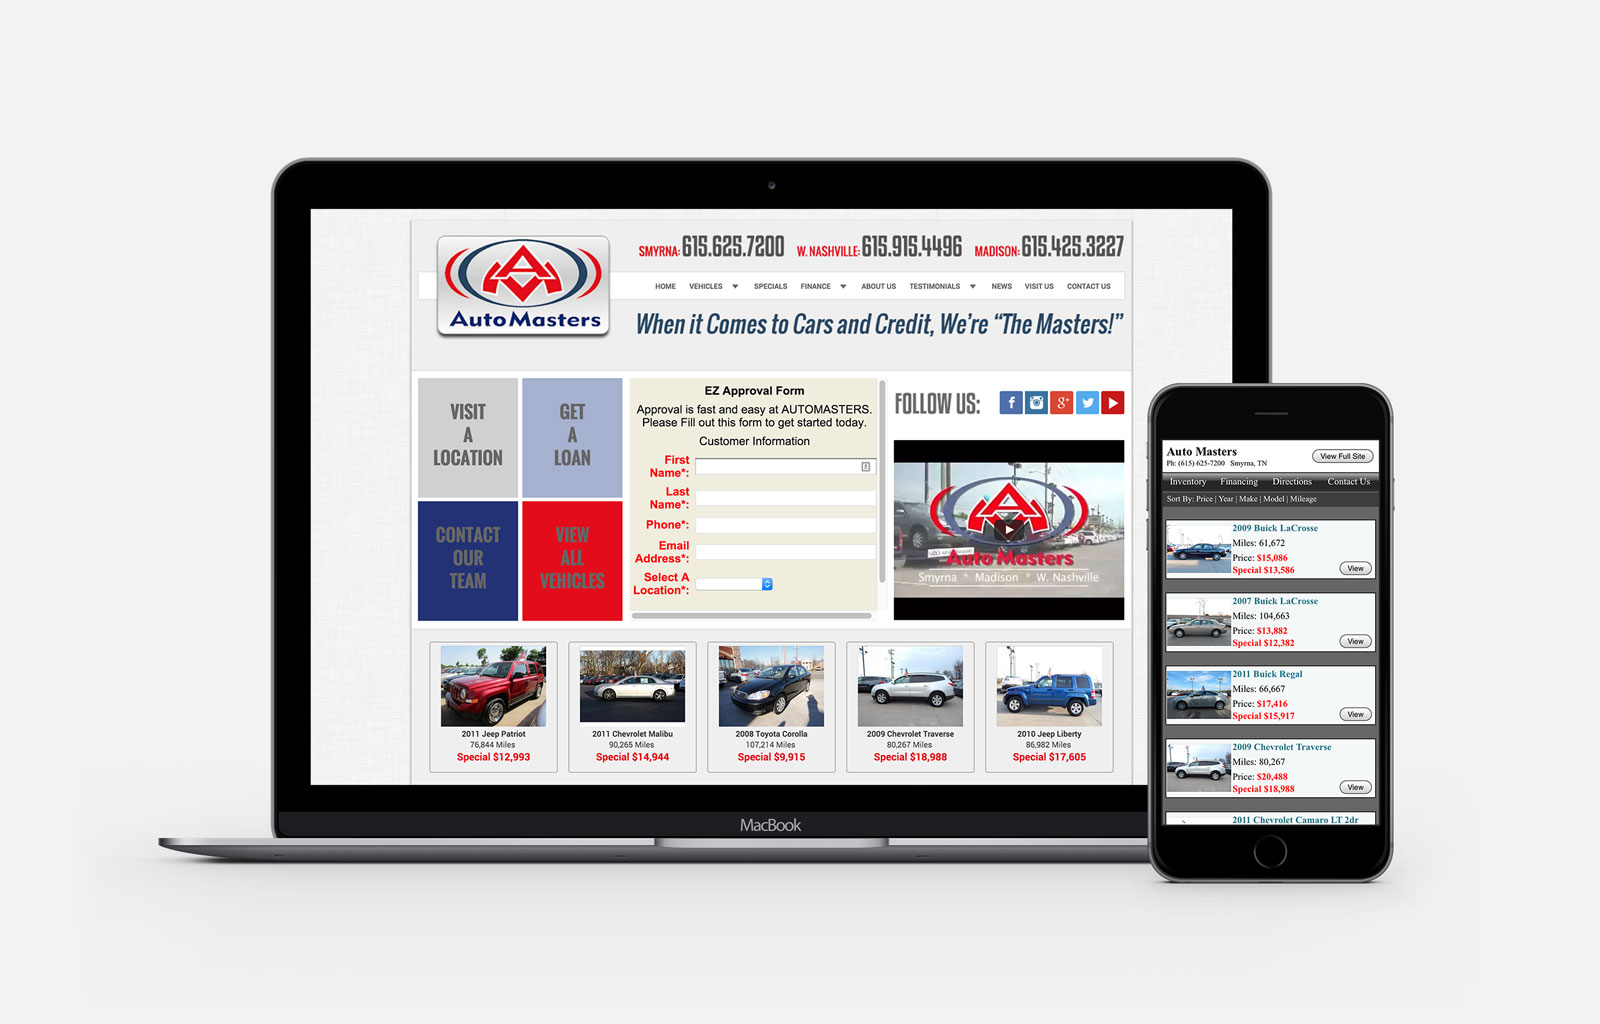 auto masters nashville marketing firm horton group